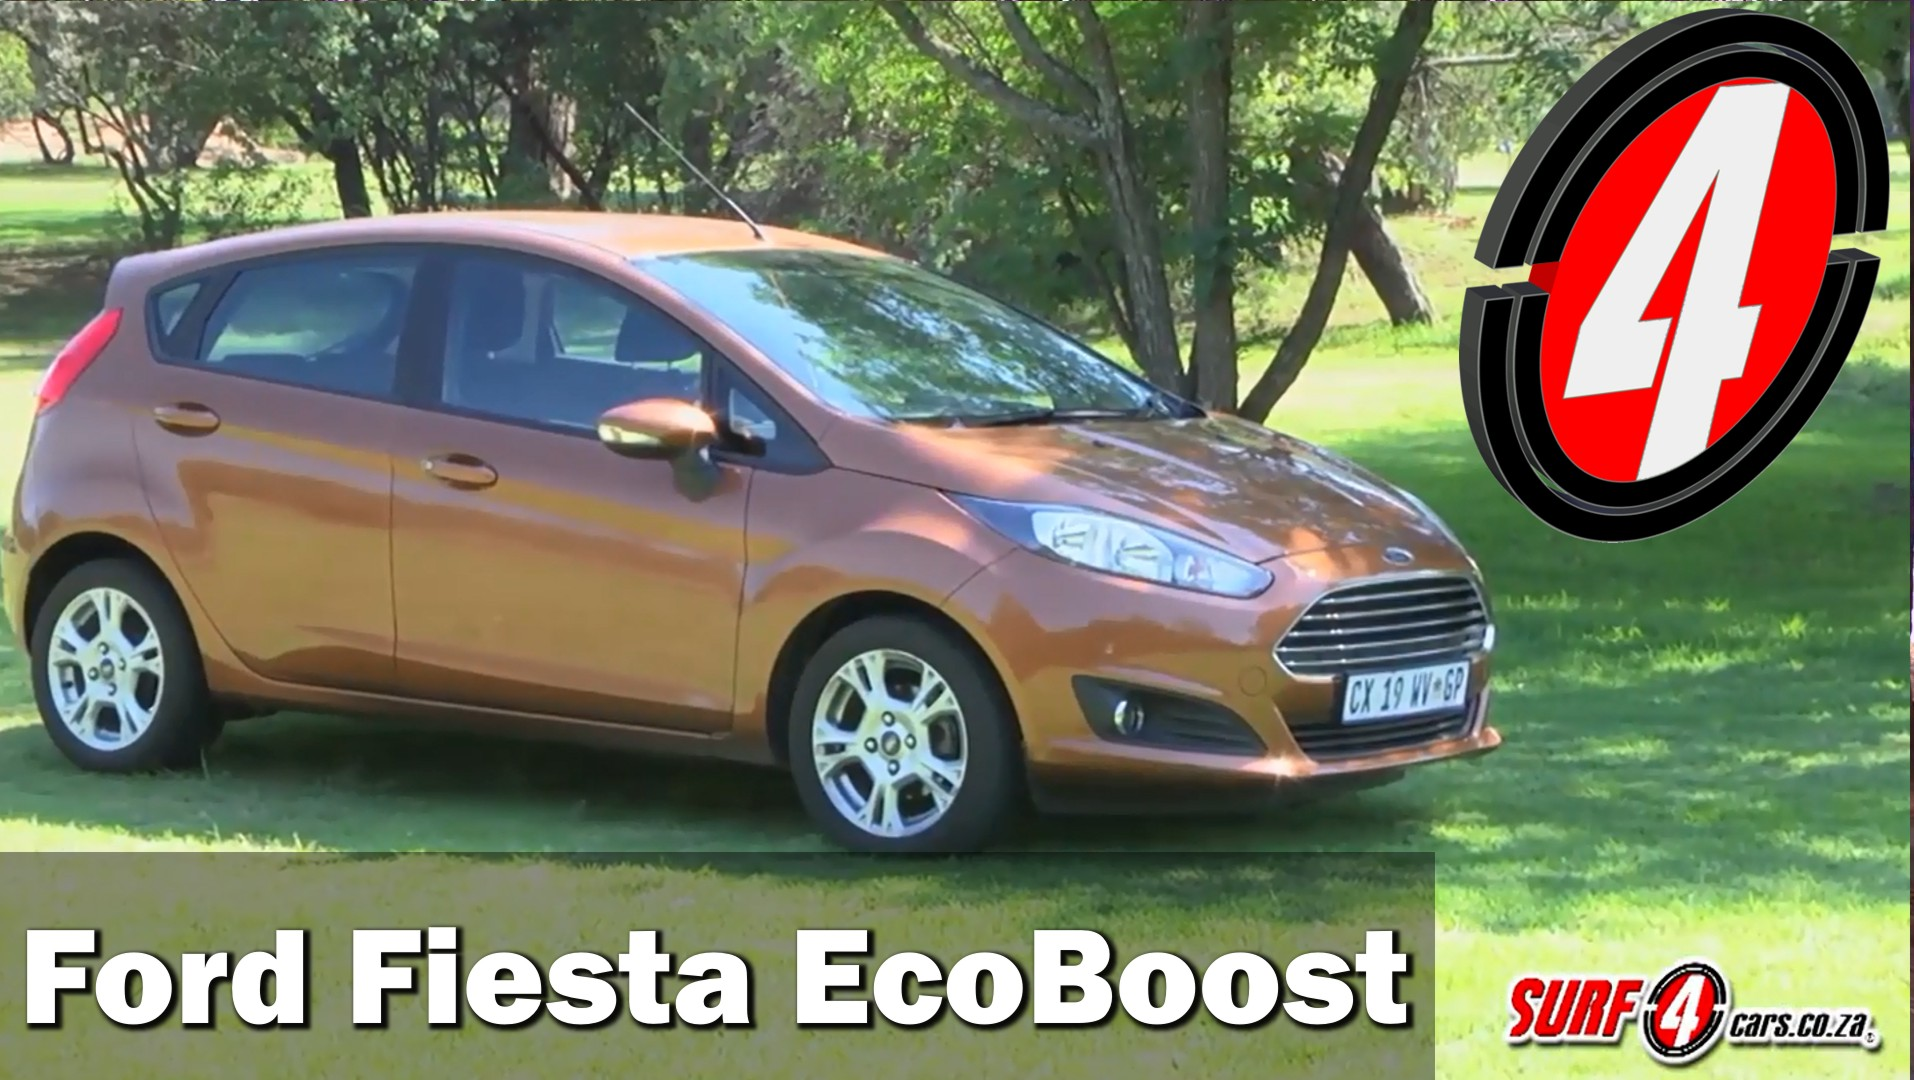 2014 Ford Fiesta EcoBoost | New Car Review Video